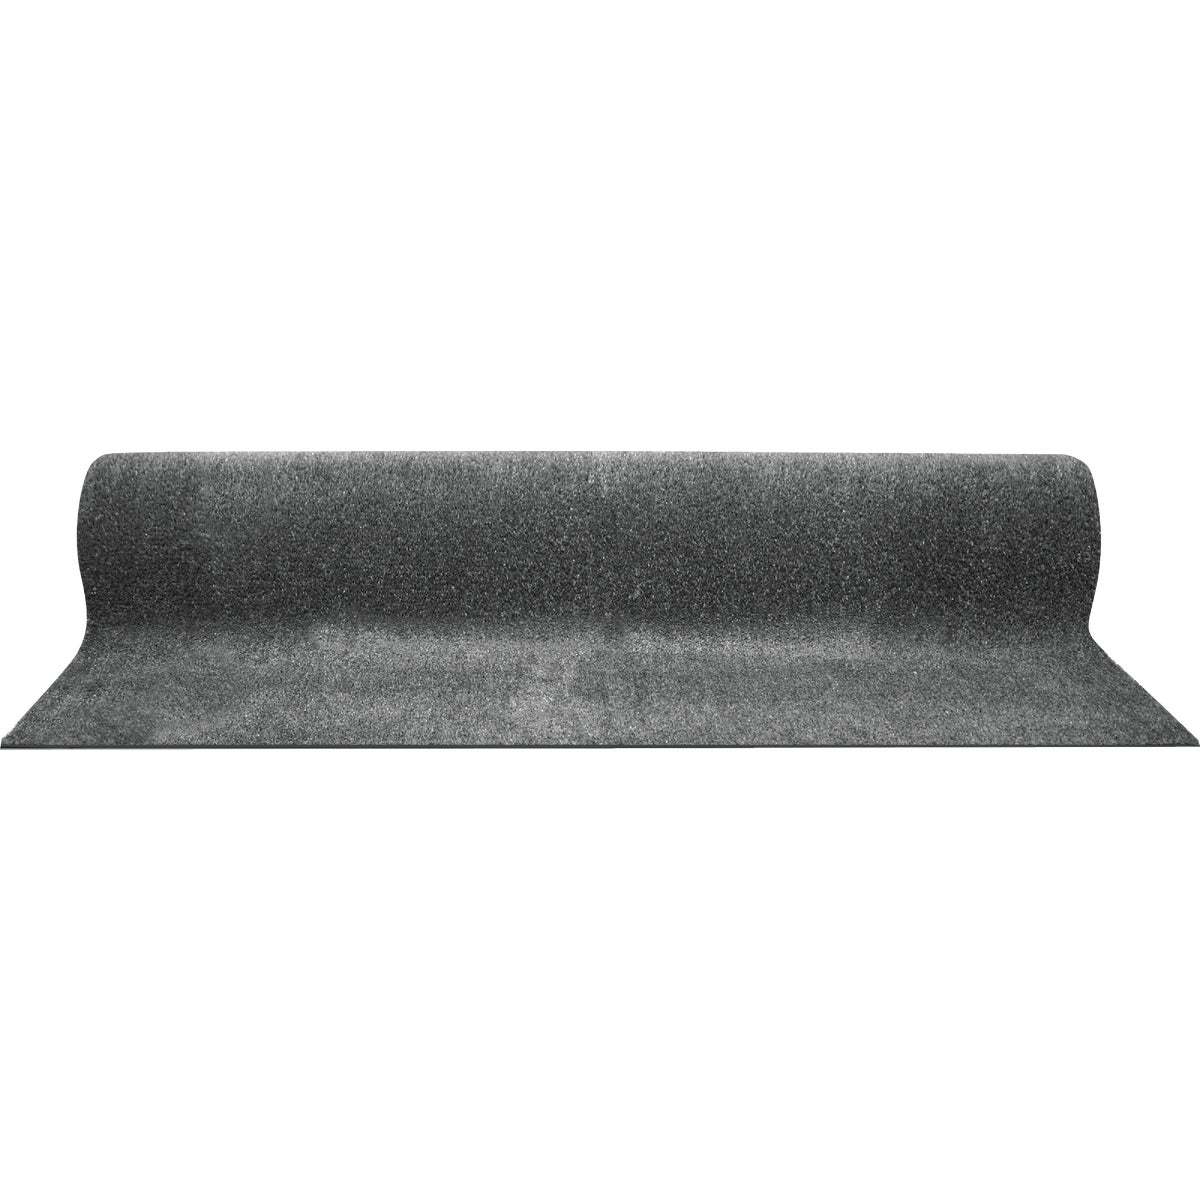 6X100 GRAY GRASS CARPET - LEGGR06 by Dennis W J & Co